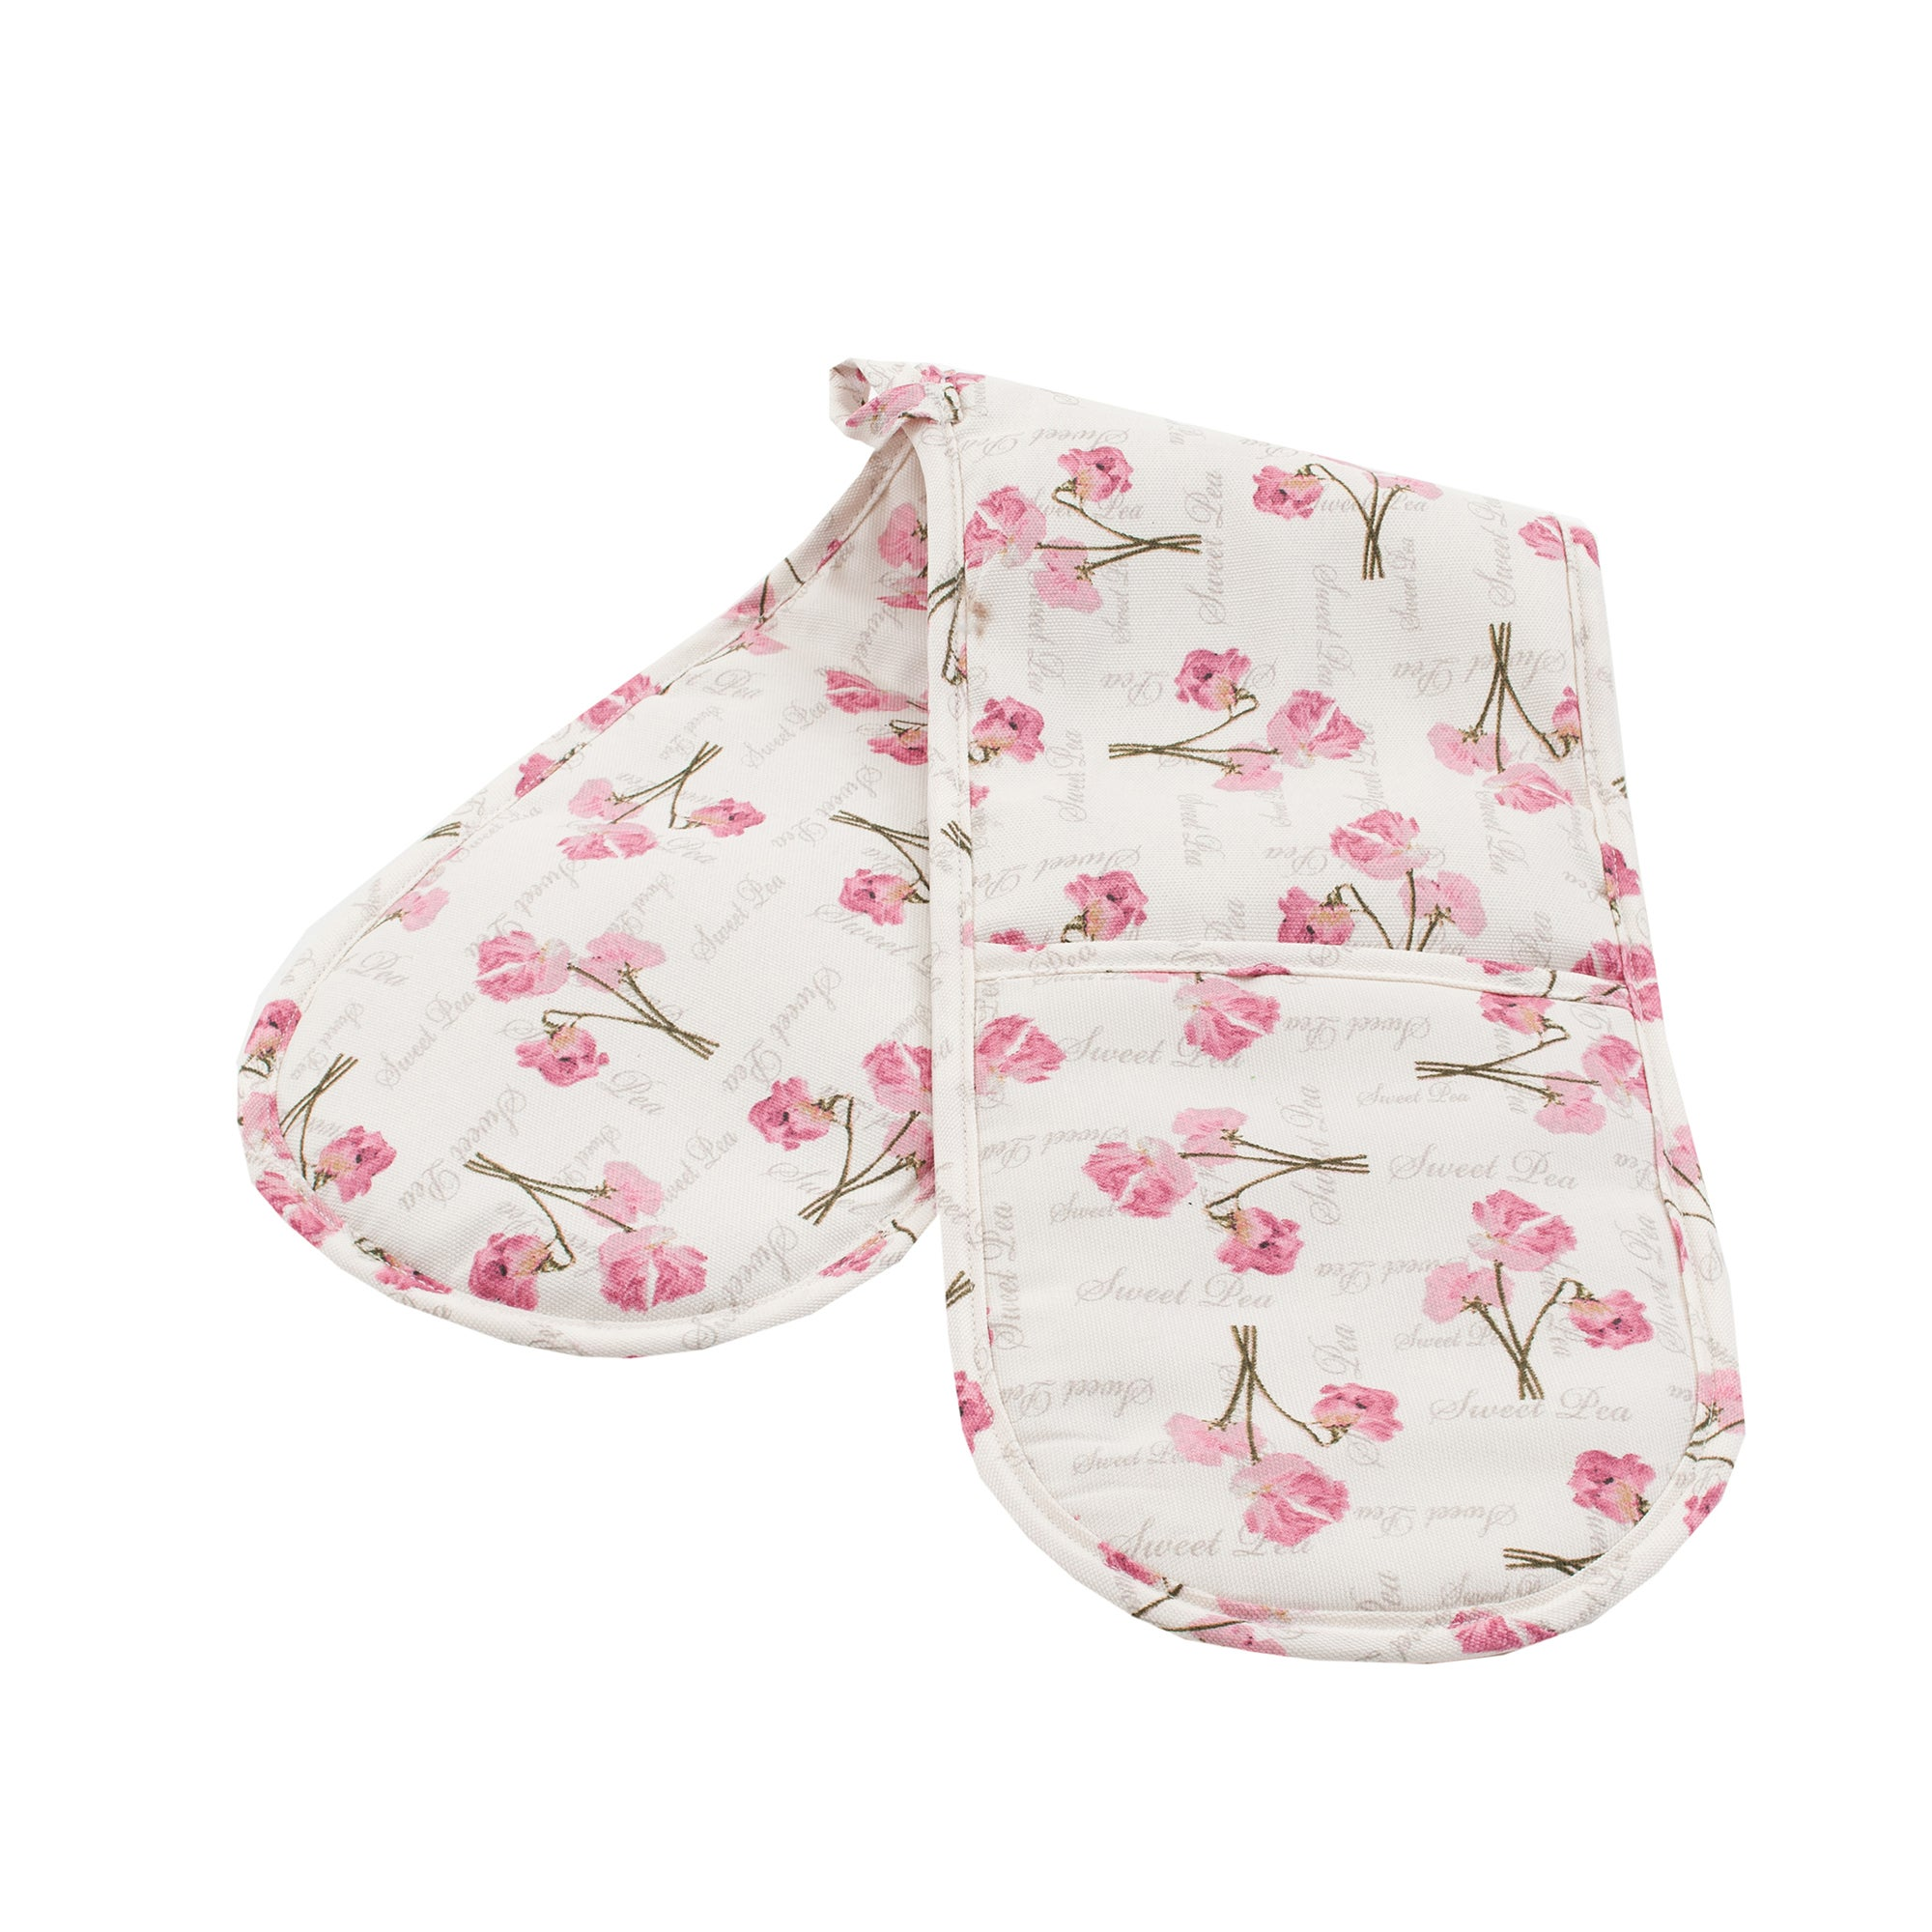 Sweet Pea Collection Double Oven Glove